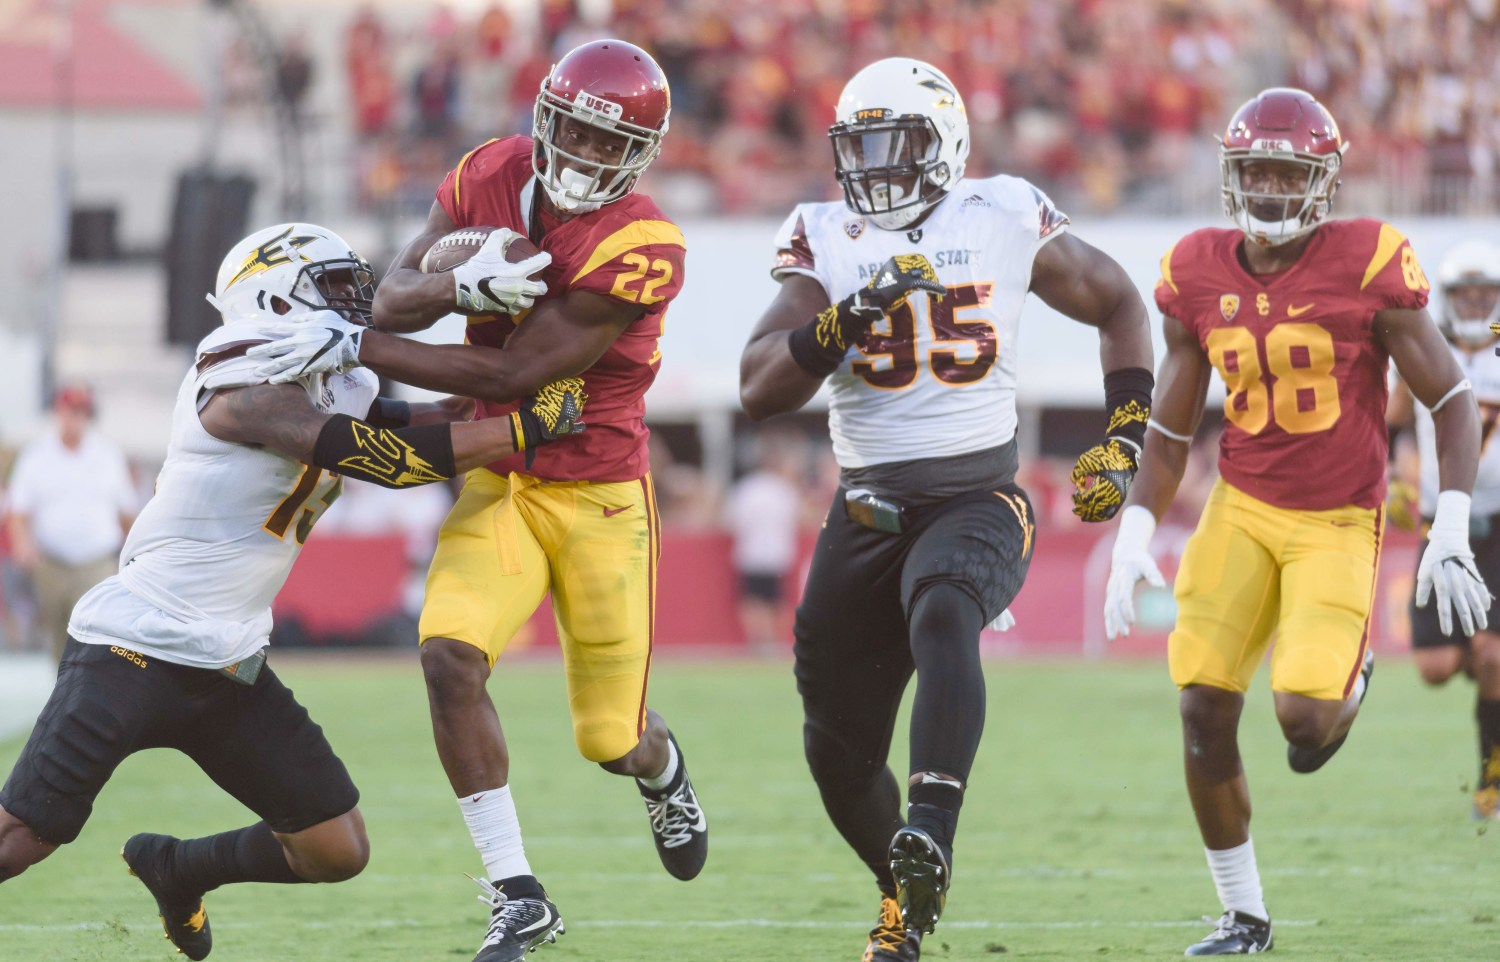 Benjamin Dunn   Daily Trojan Dashing Davis · Senior running back Justin Davis and the Trojans are facing their fourth-ranked opponent of the season in No. 21 Colorado. Davis has rushed for over 100 yards in two consecutive games.